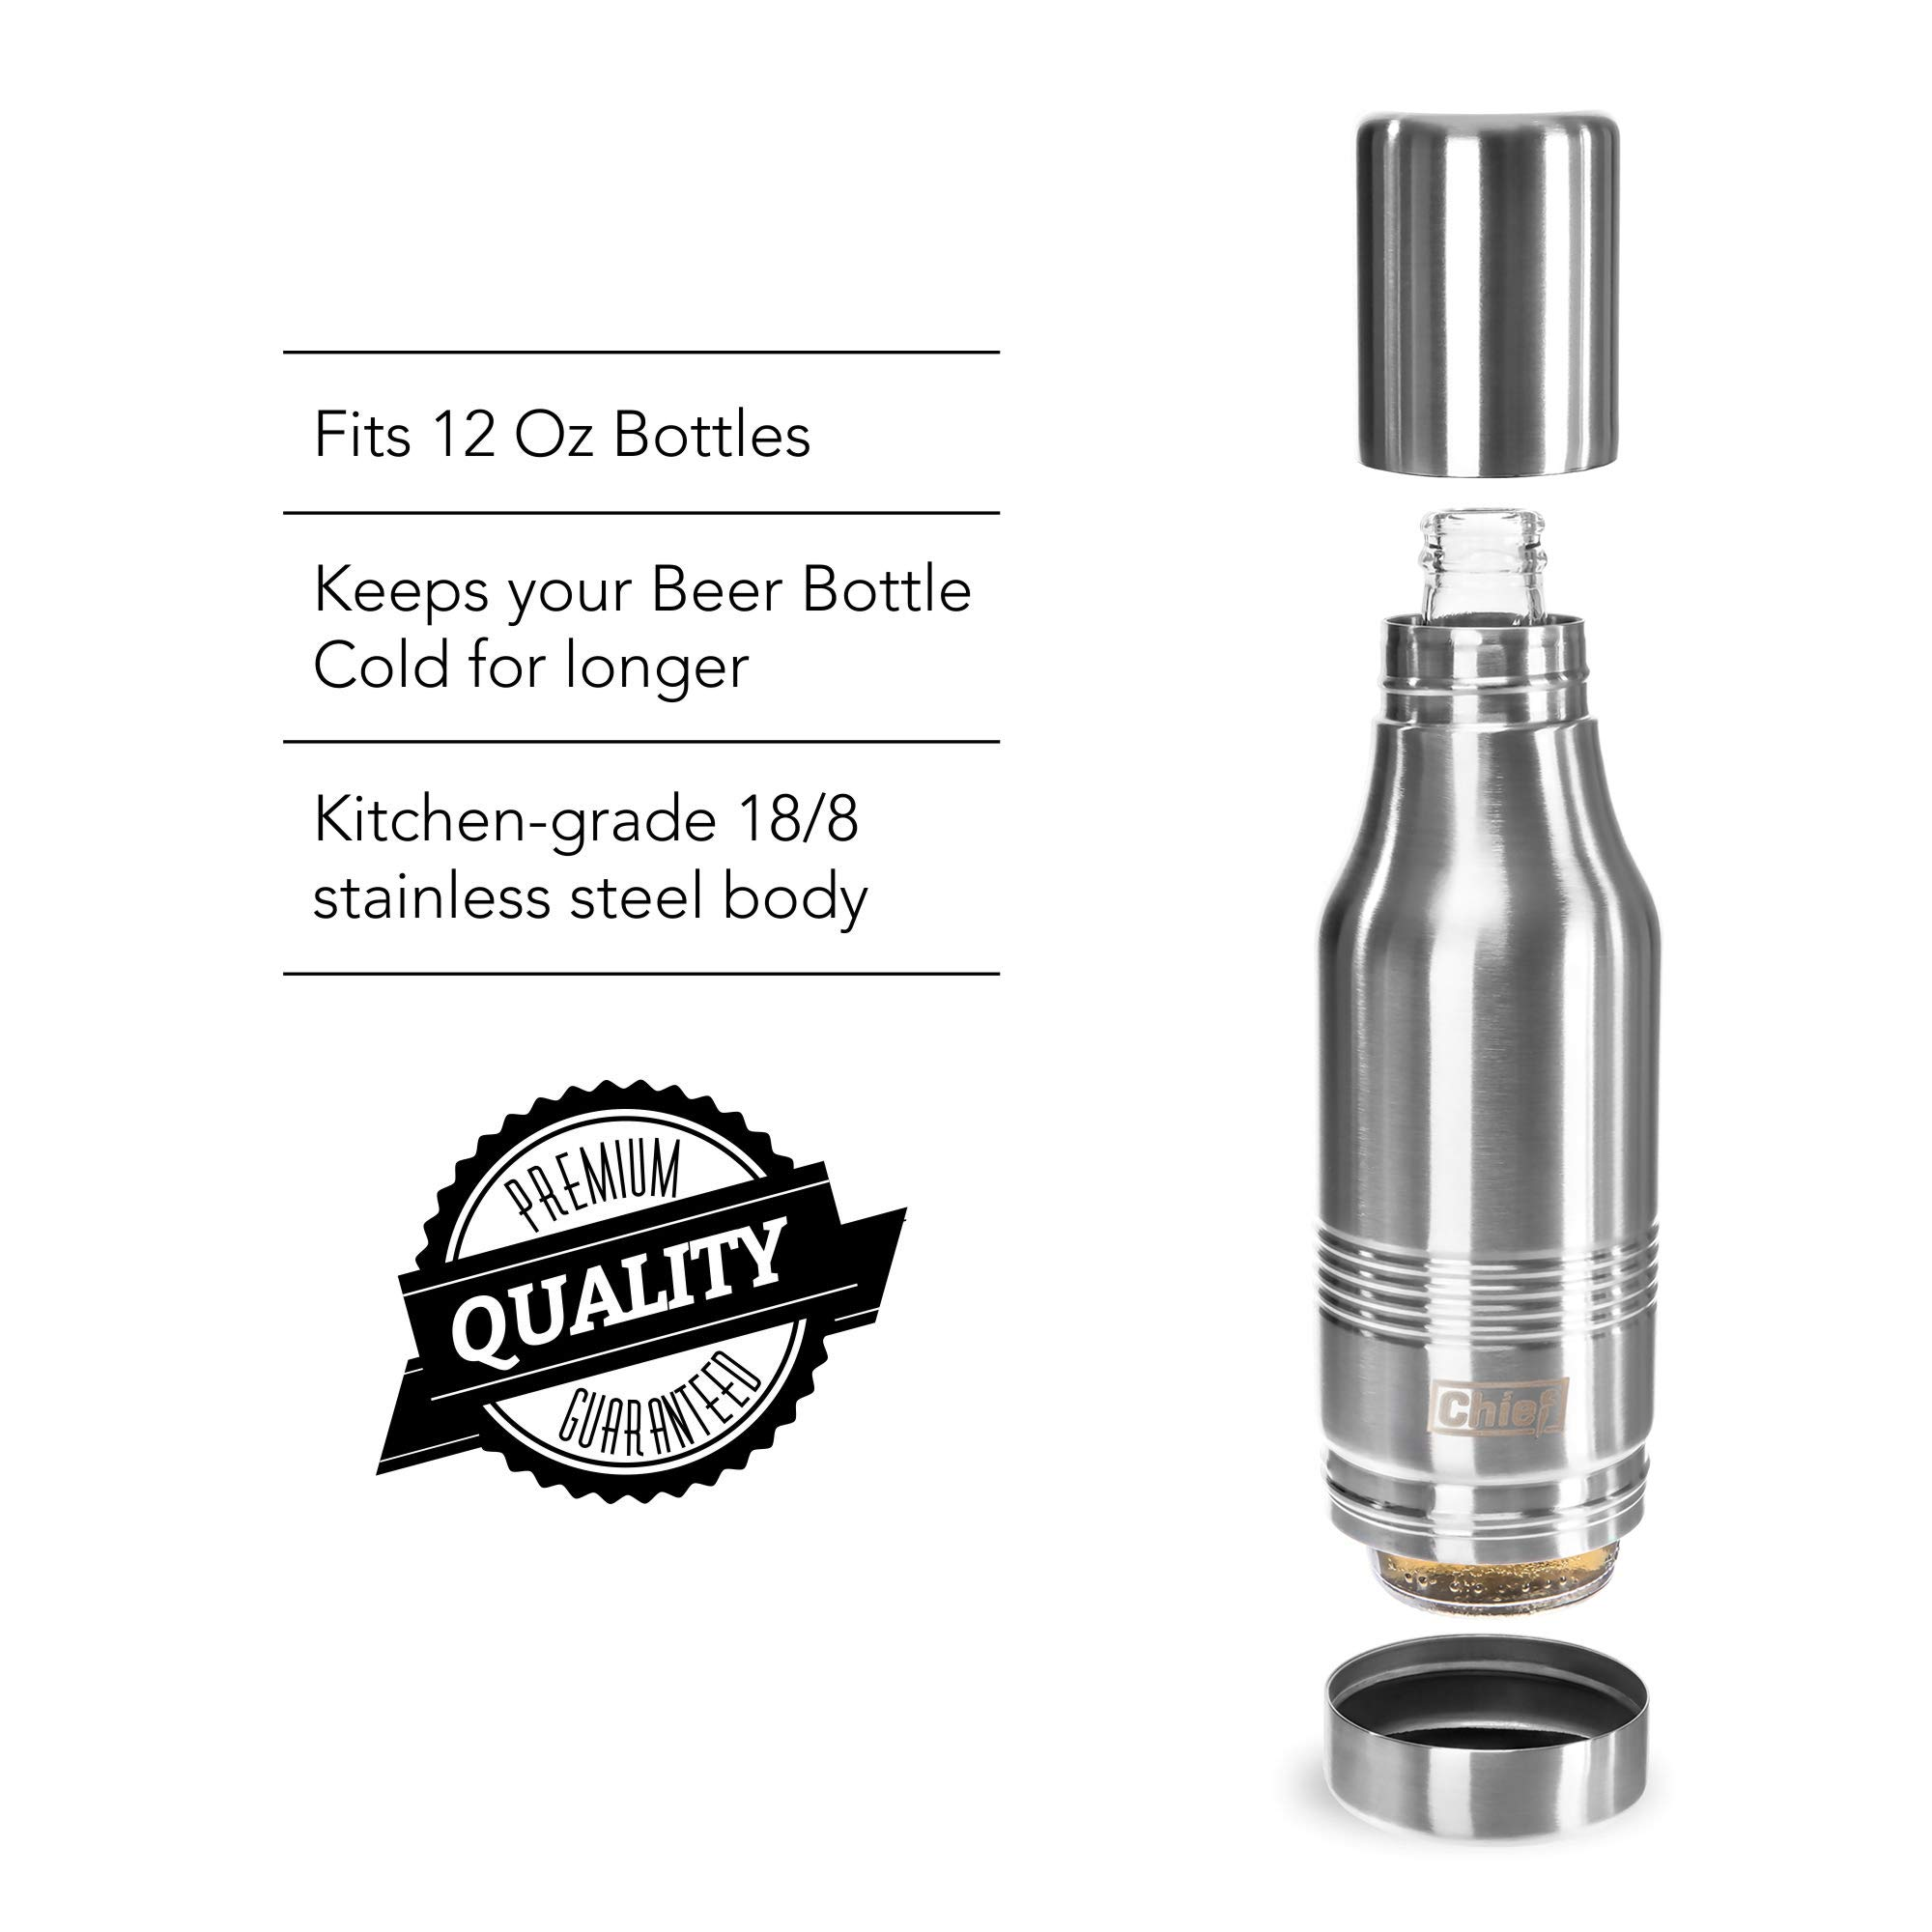 Beer Bottle Cooler- Double Wall Stainless Steel Beer Bottle Insulator. Great Gift ! BONUS e-Book and Gift Packaging. by Chief (Image #8)